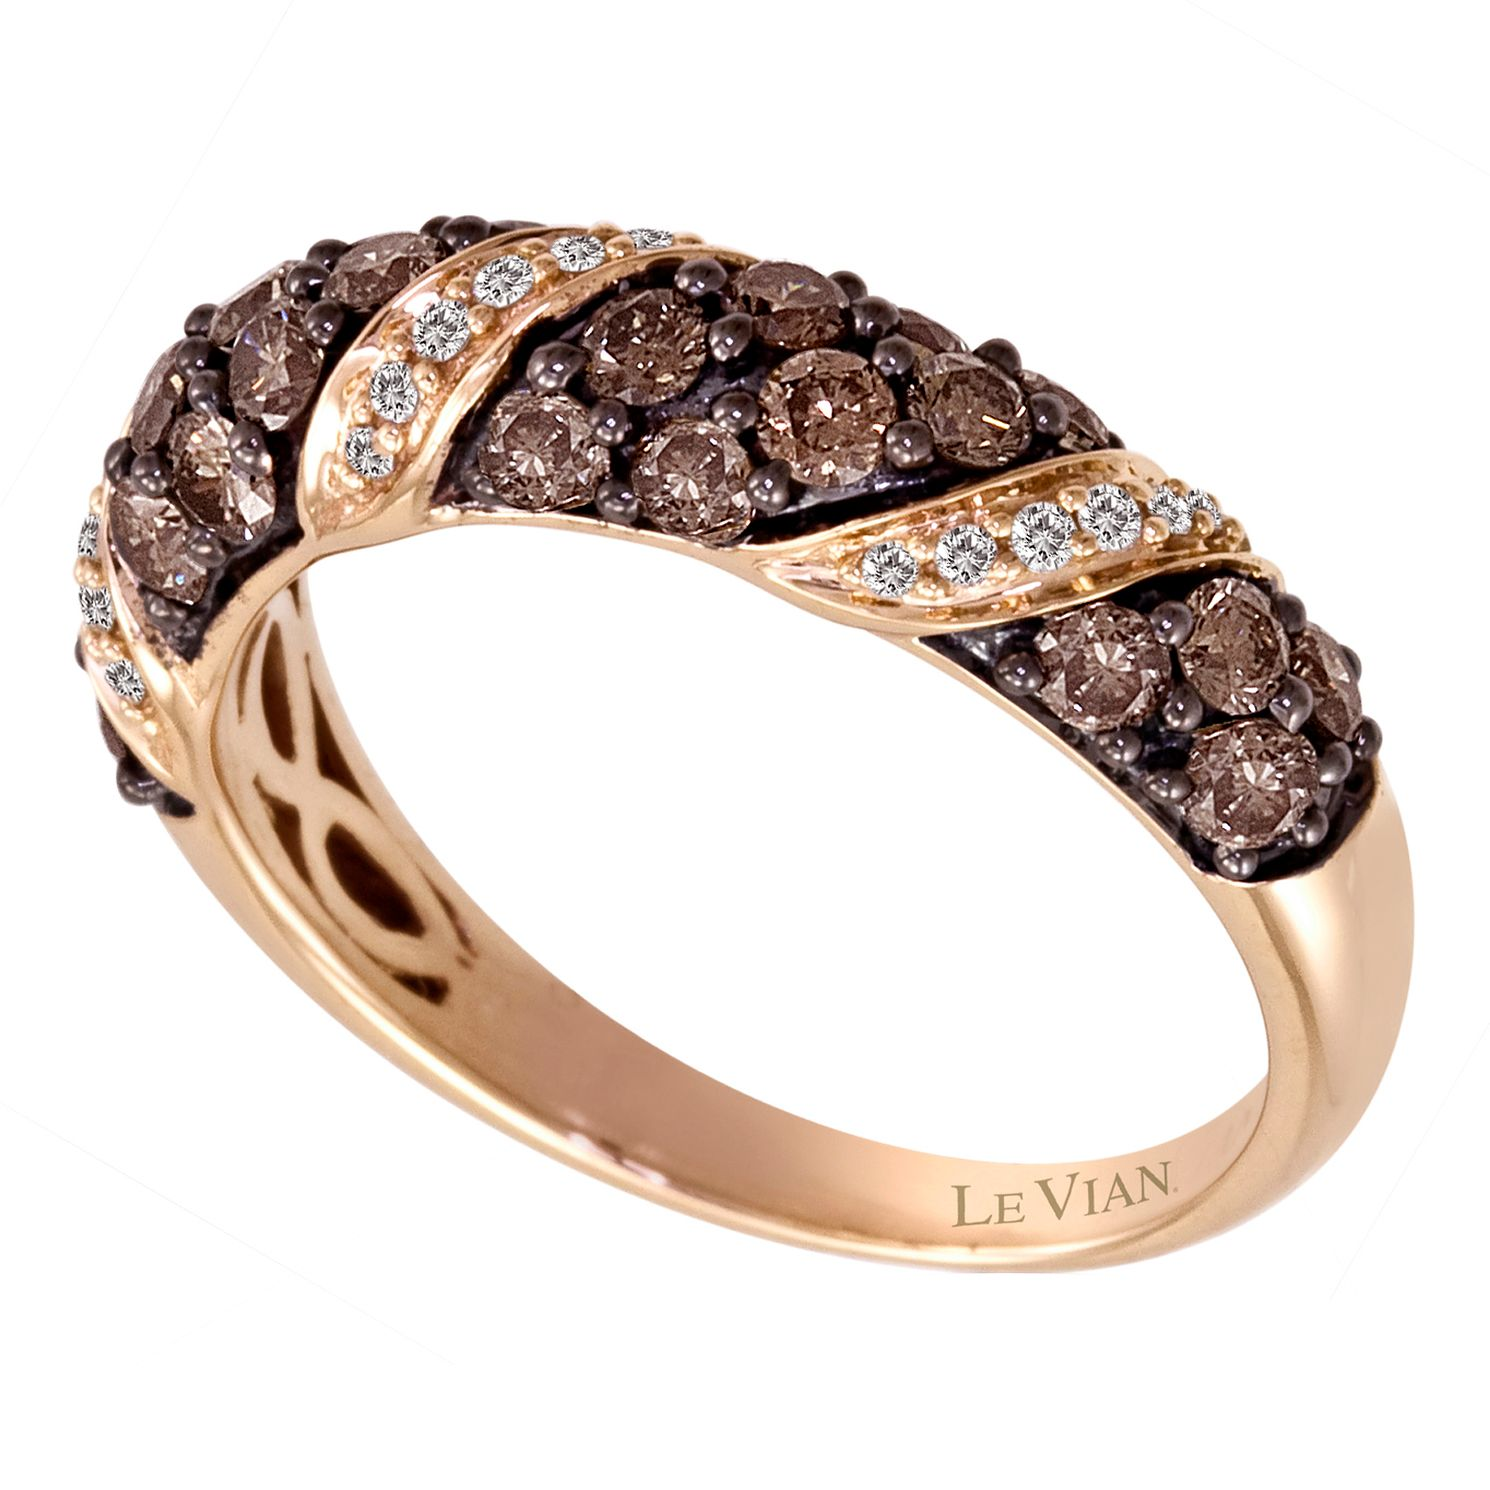 Le Vian 14ct Strawberry Gold 1 Carat Diamond Ring - Product number 8539634